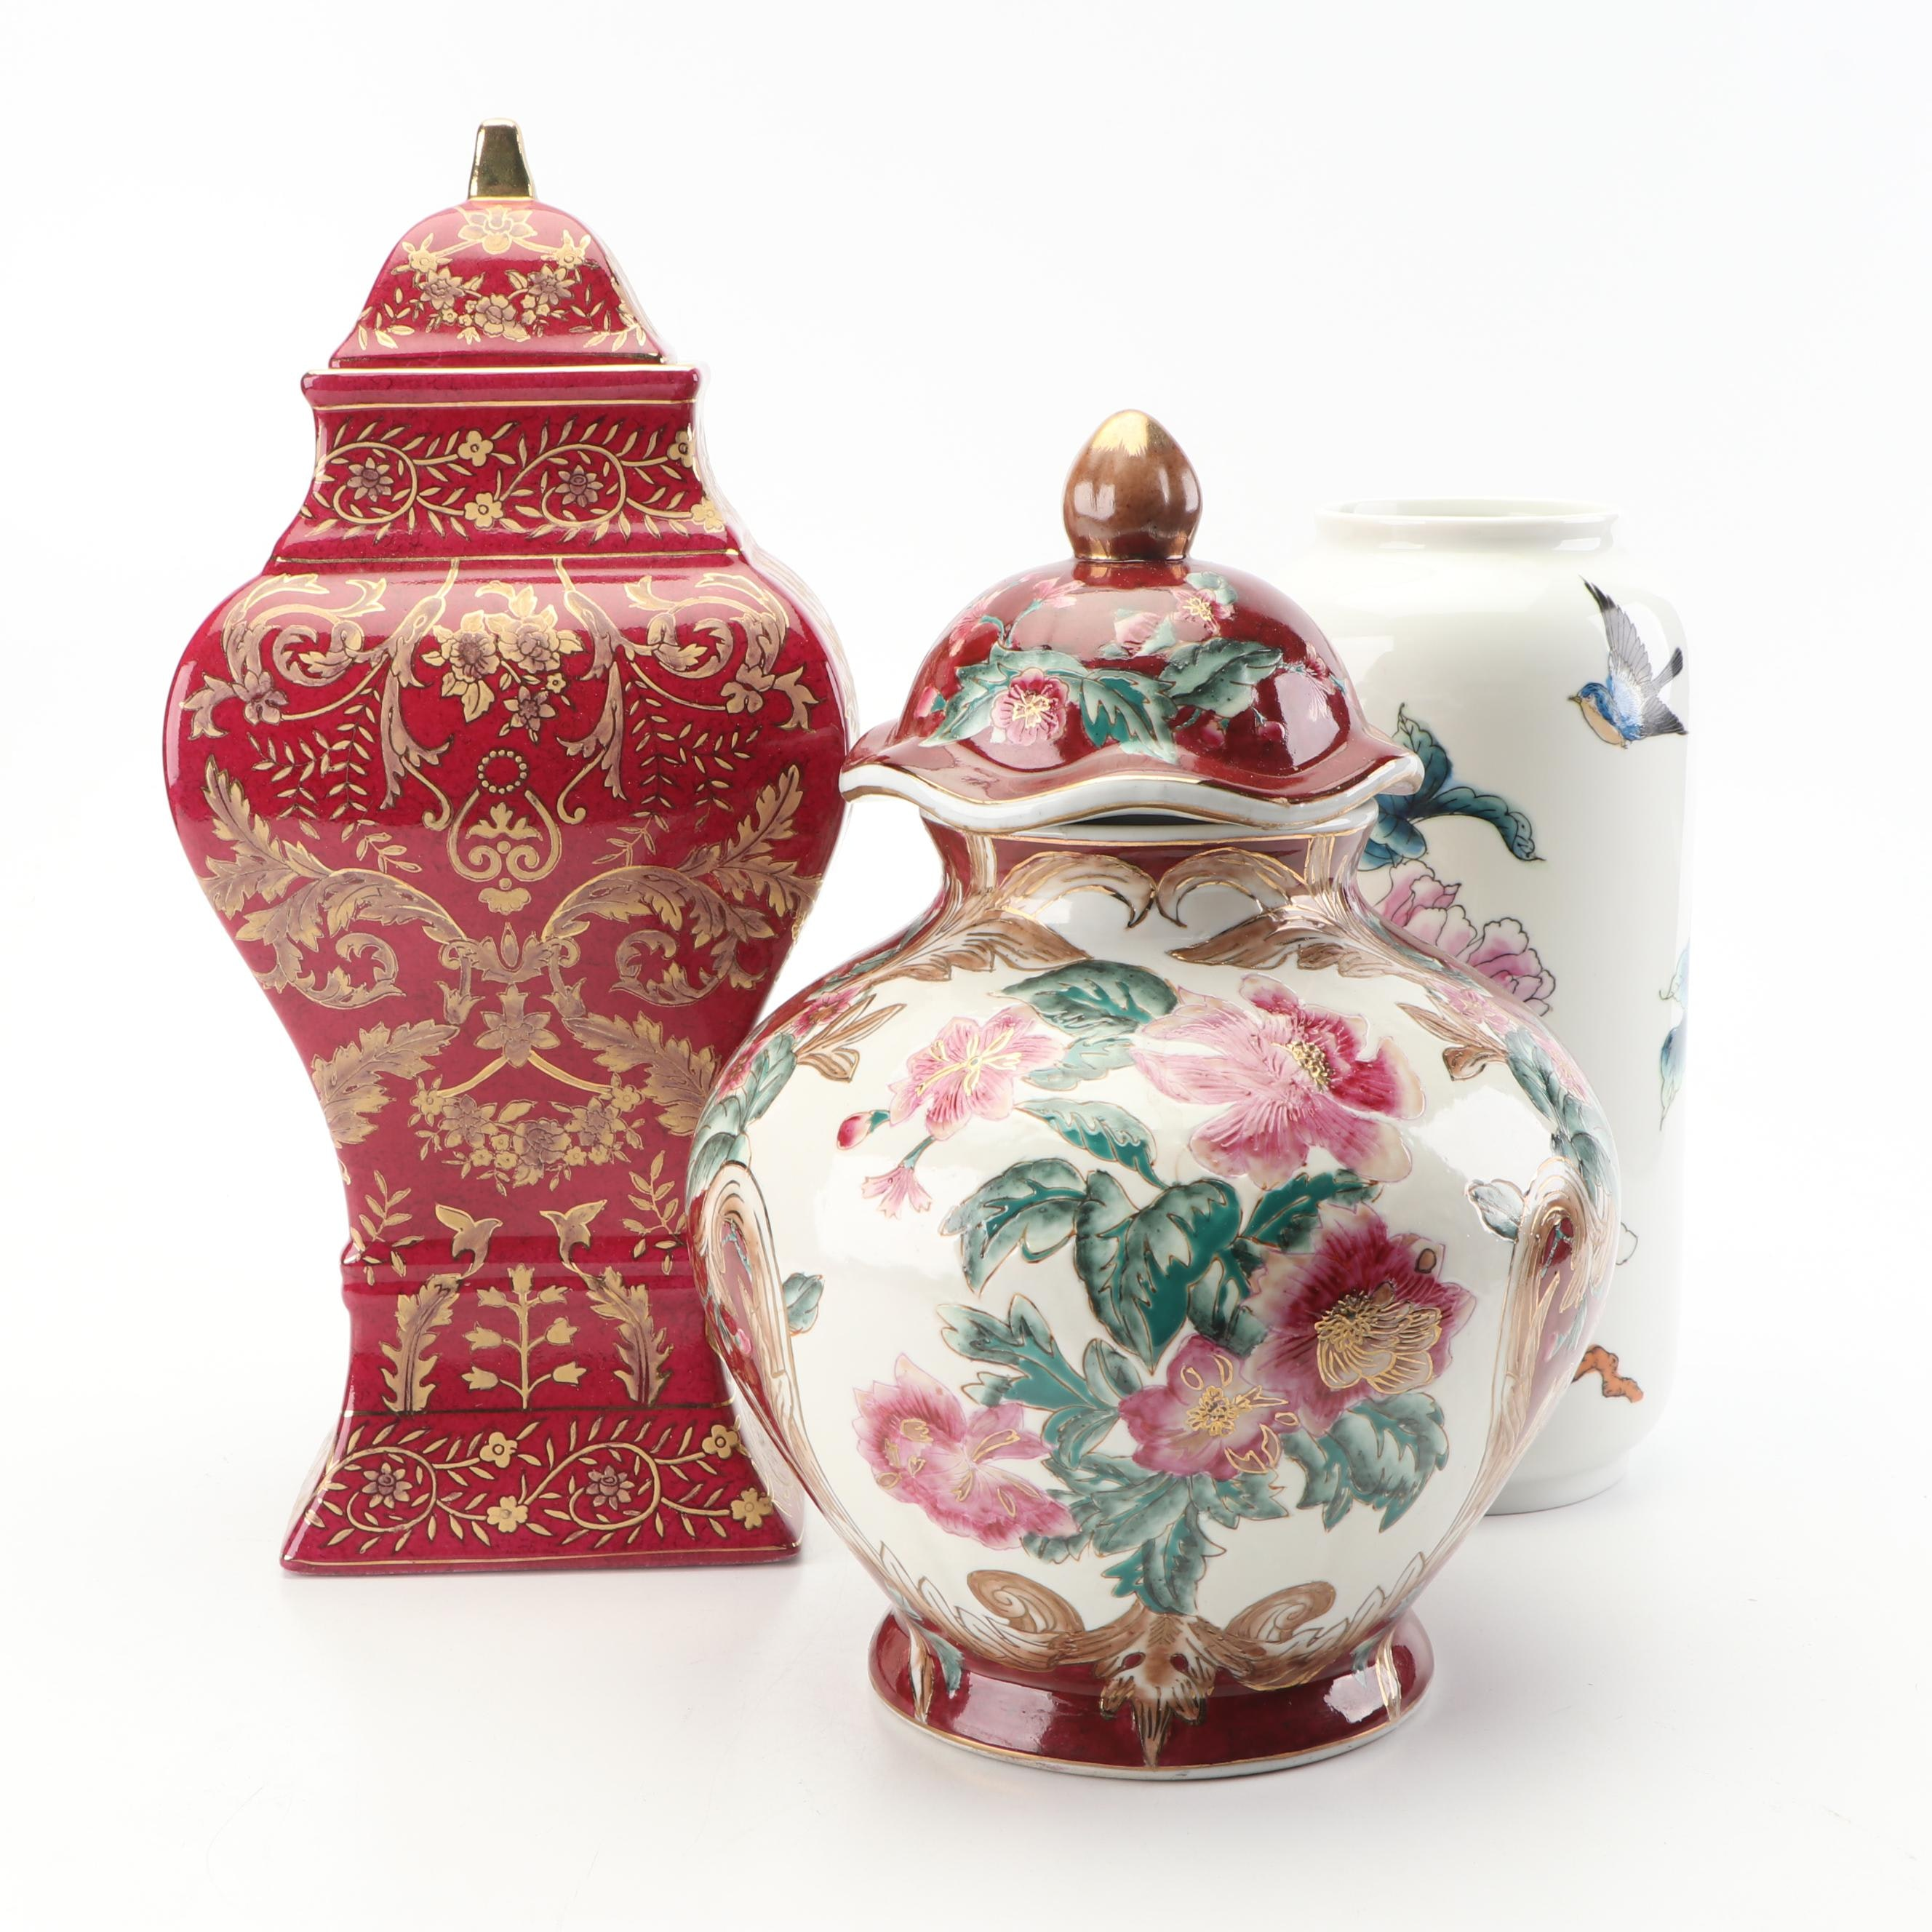 Chinese Decorative Jars and Vase